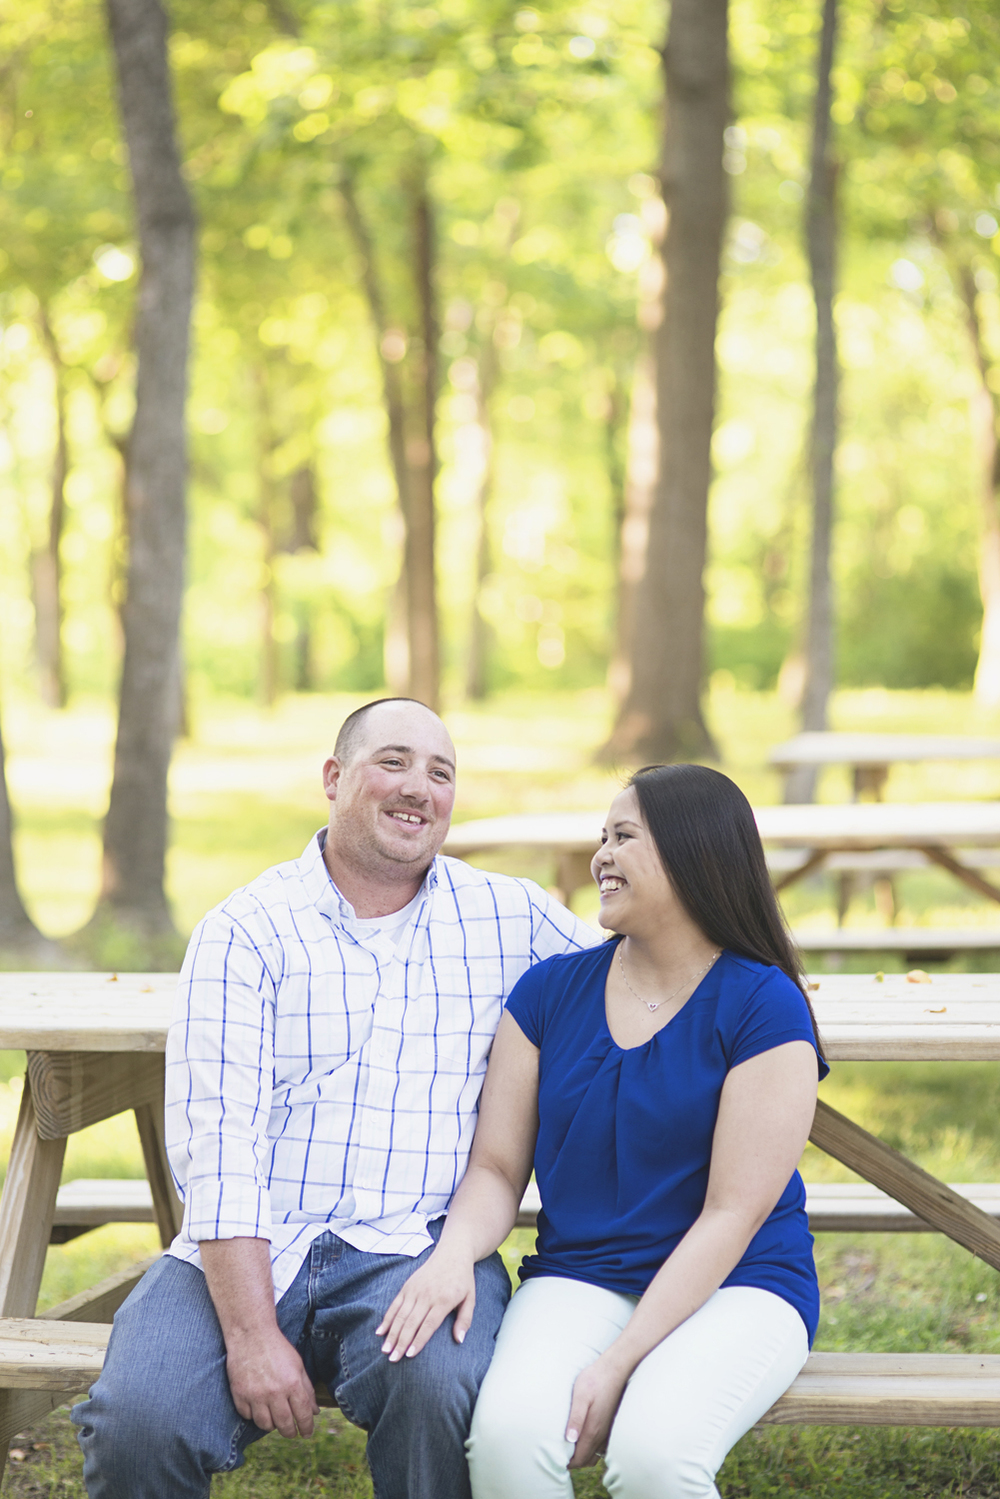 Windsor Castle Park Engagement Session in Smithfield, Virginia | Picnic bench